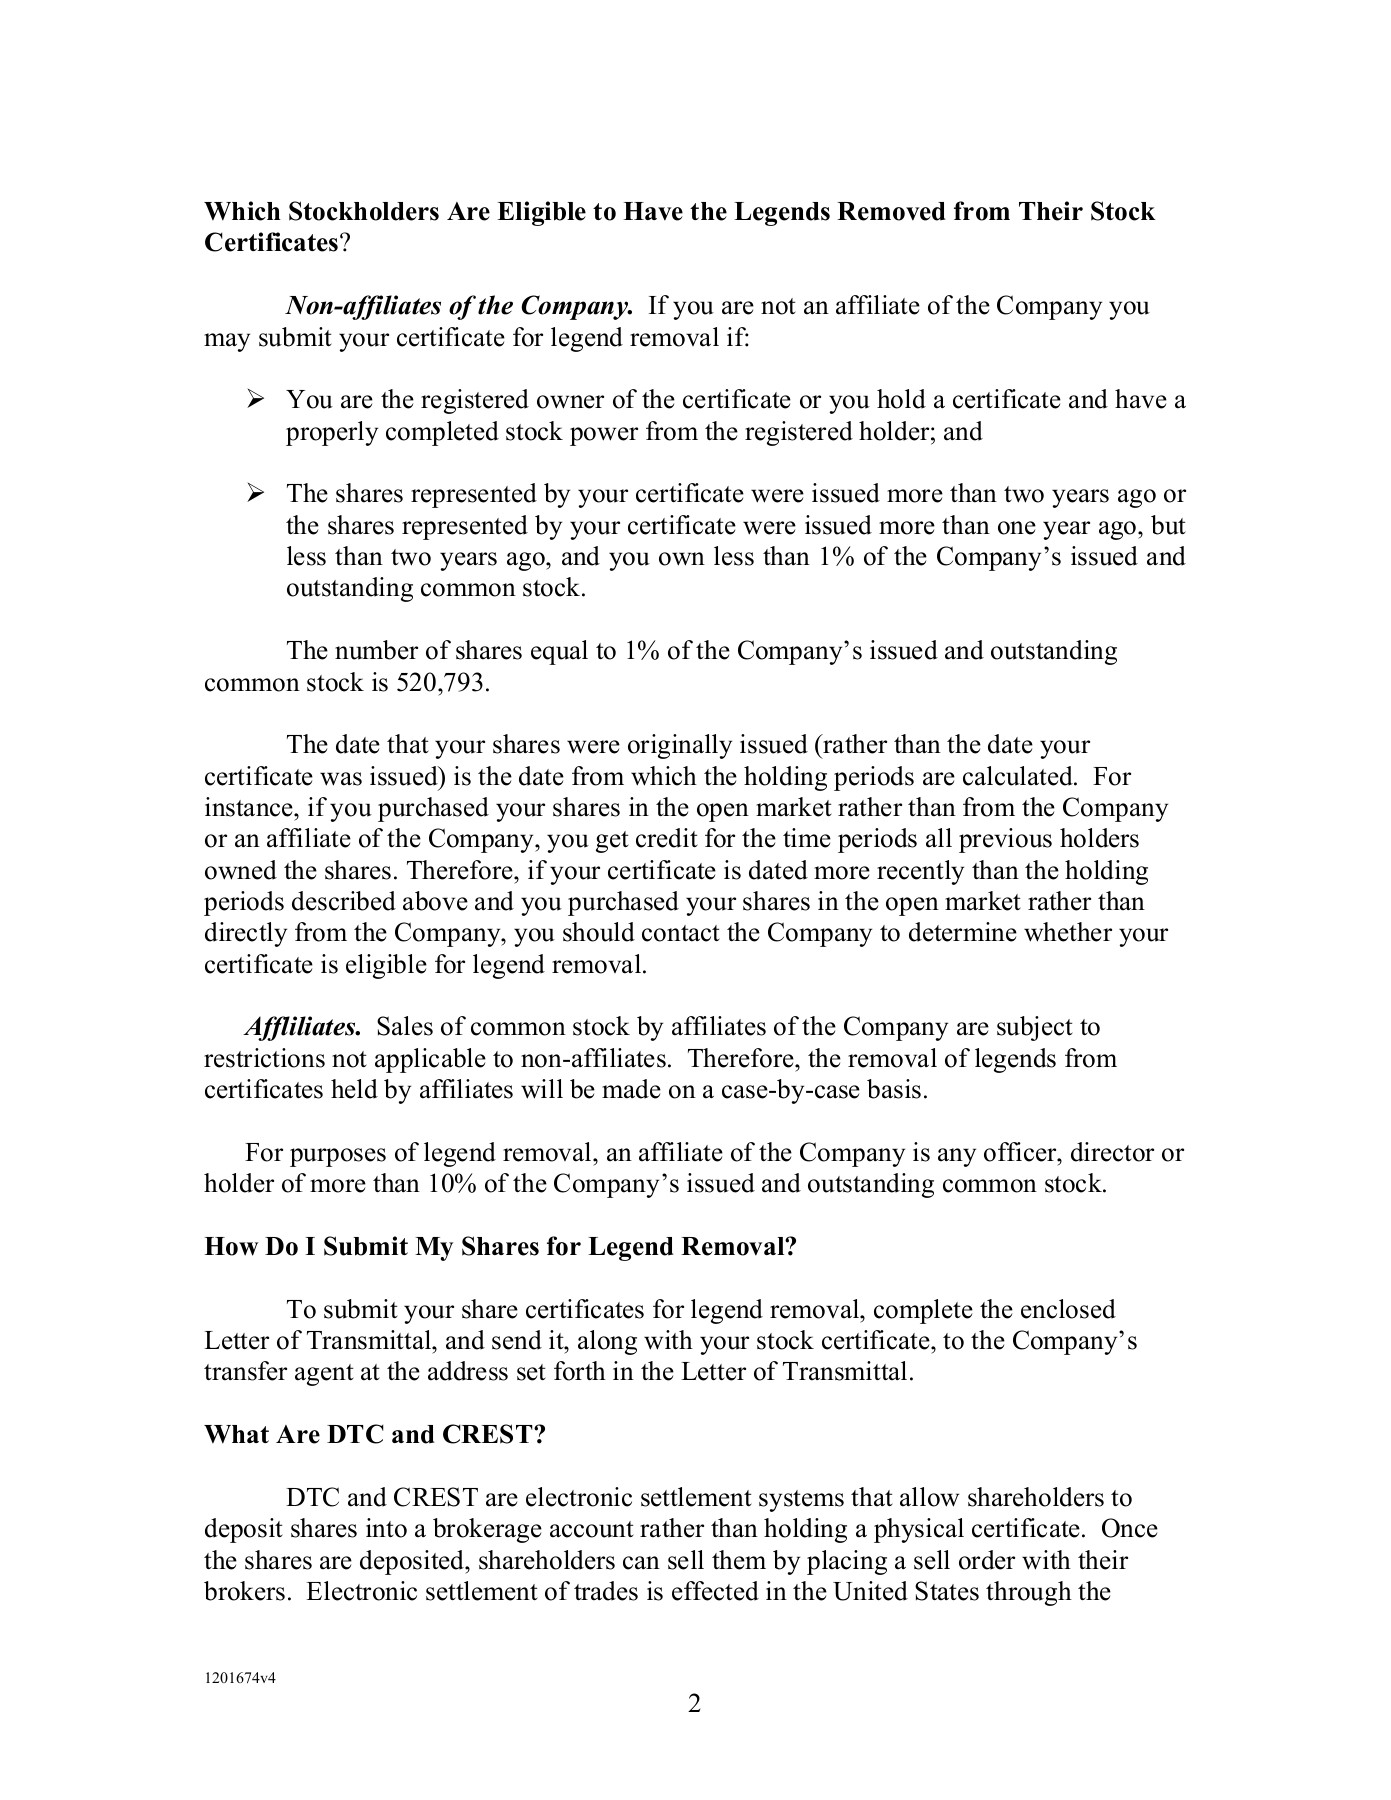 Frontera Resources Corporation Questions and Answers